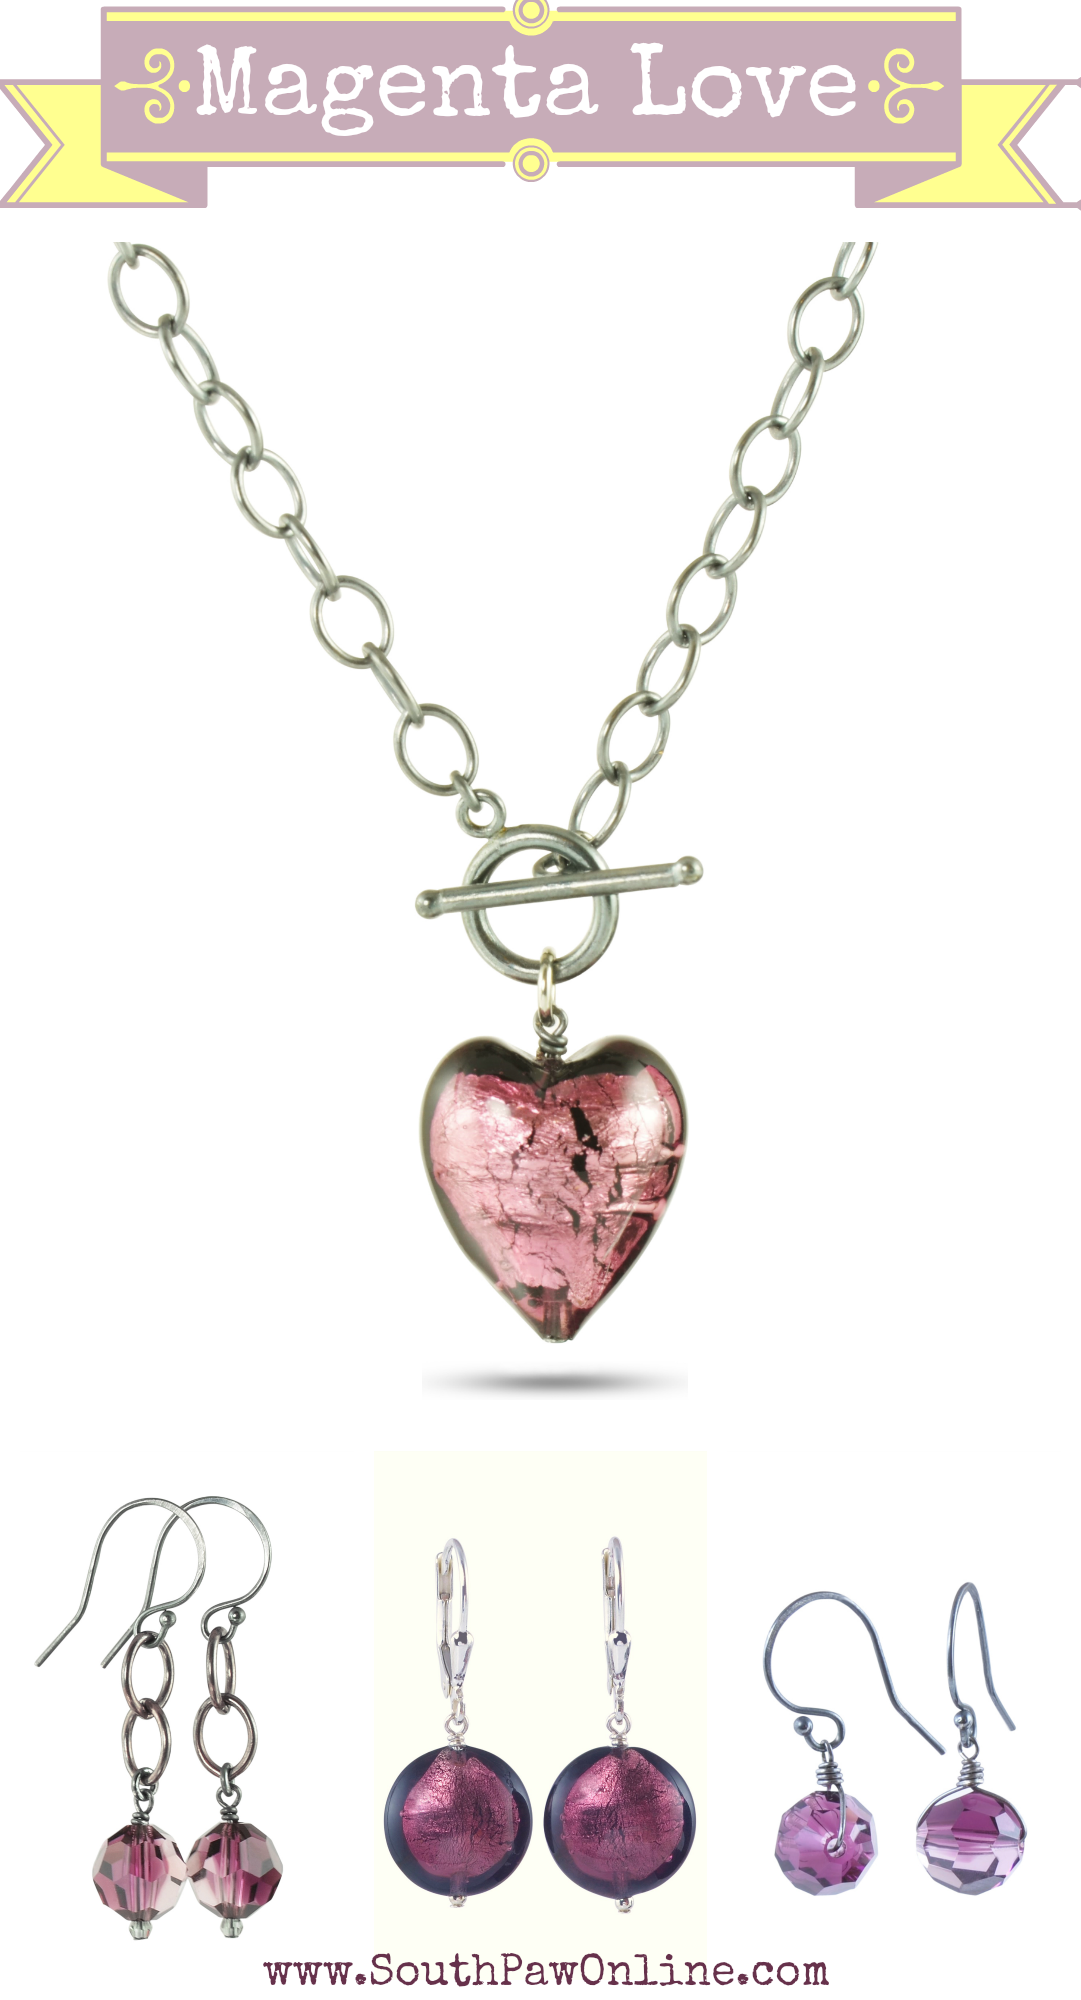 Magenta Love | http://southpawonline.com/collections/queen-of-hearts/products/purple-venetian-glass-toggle-necklace